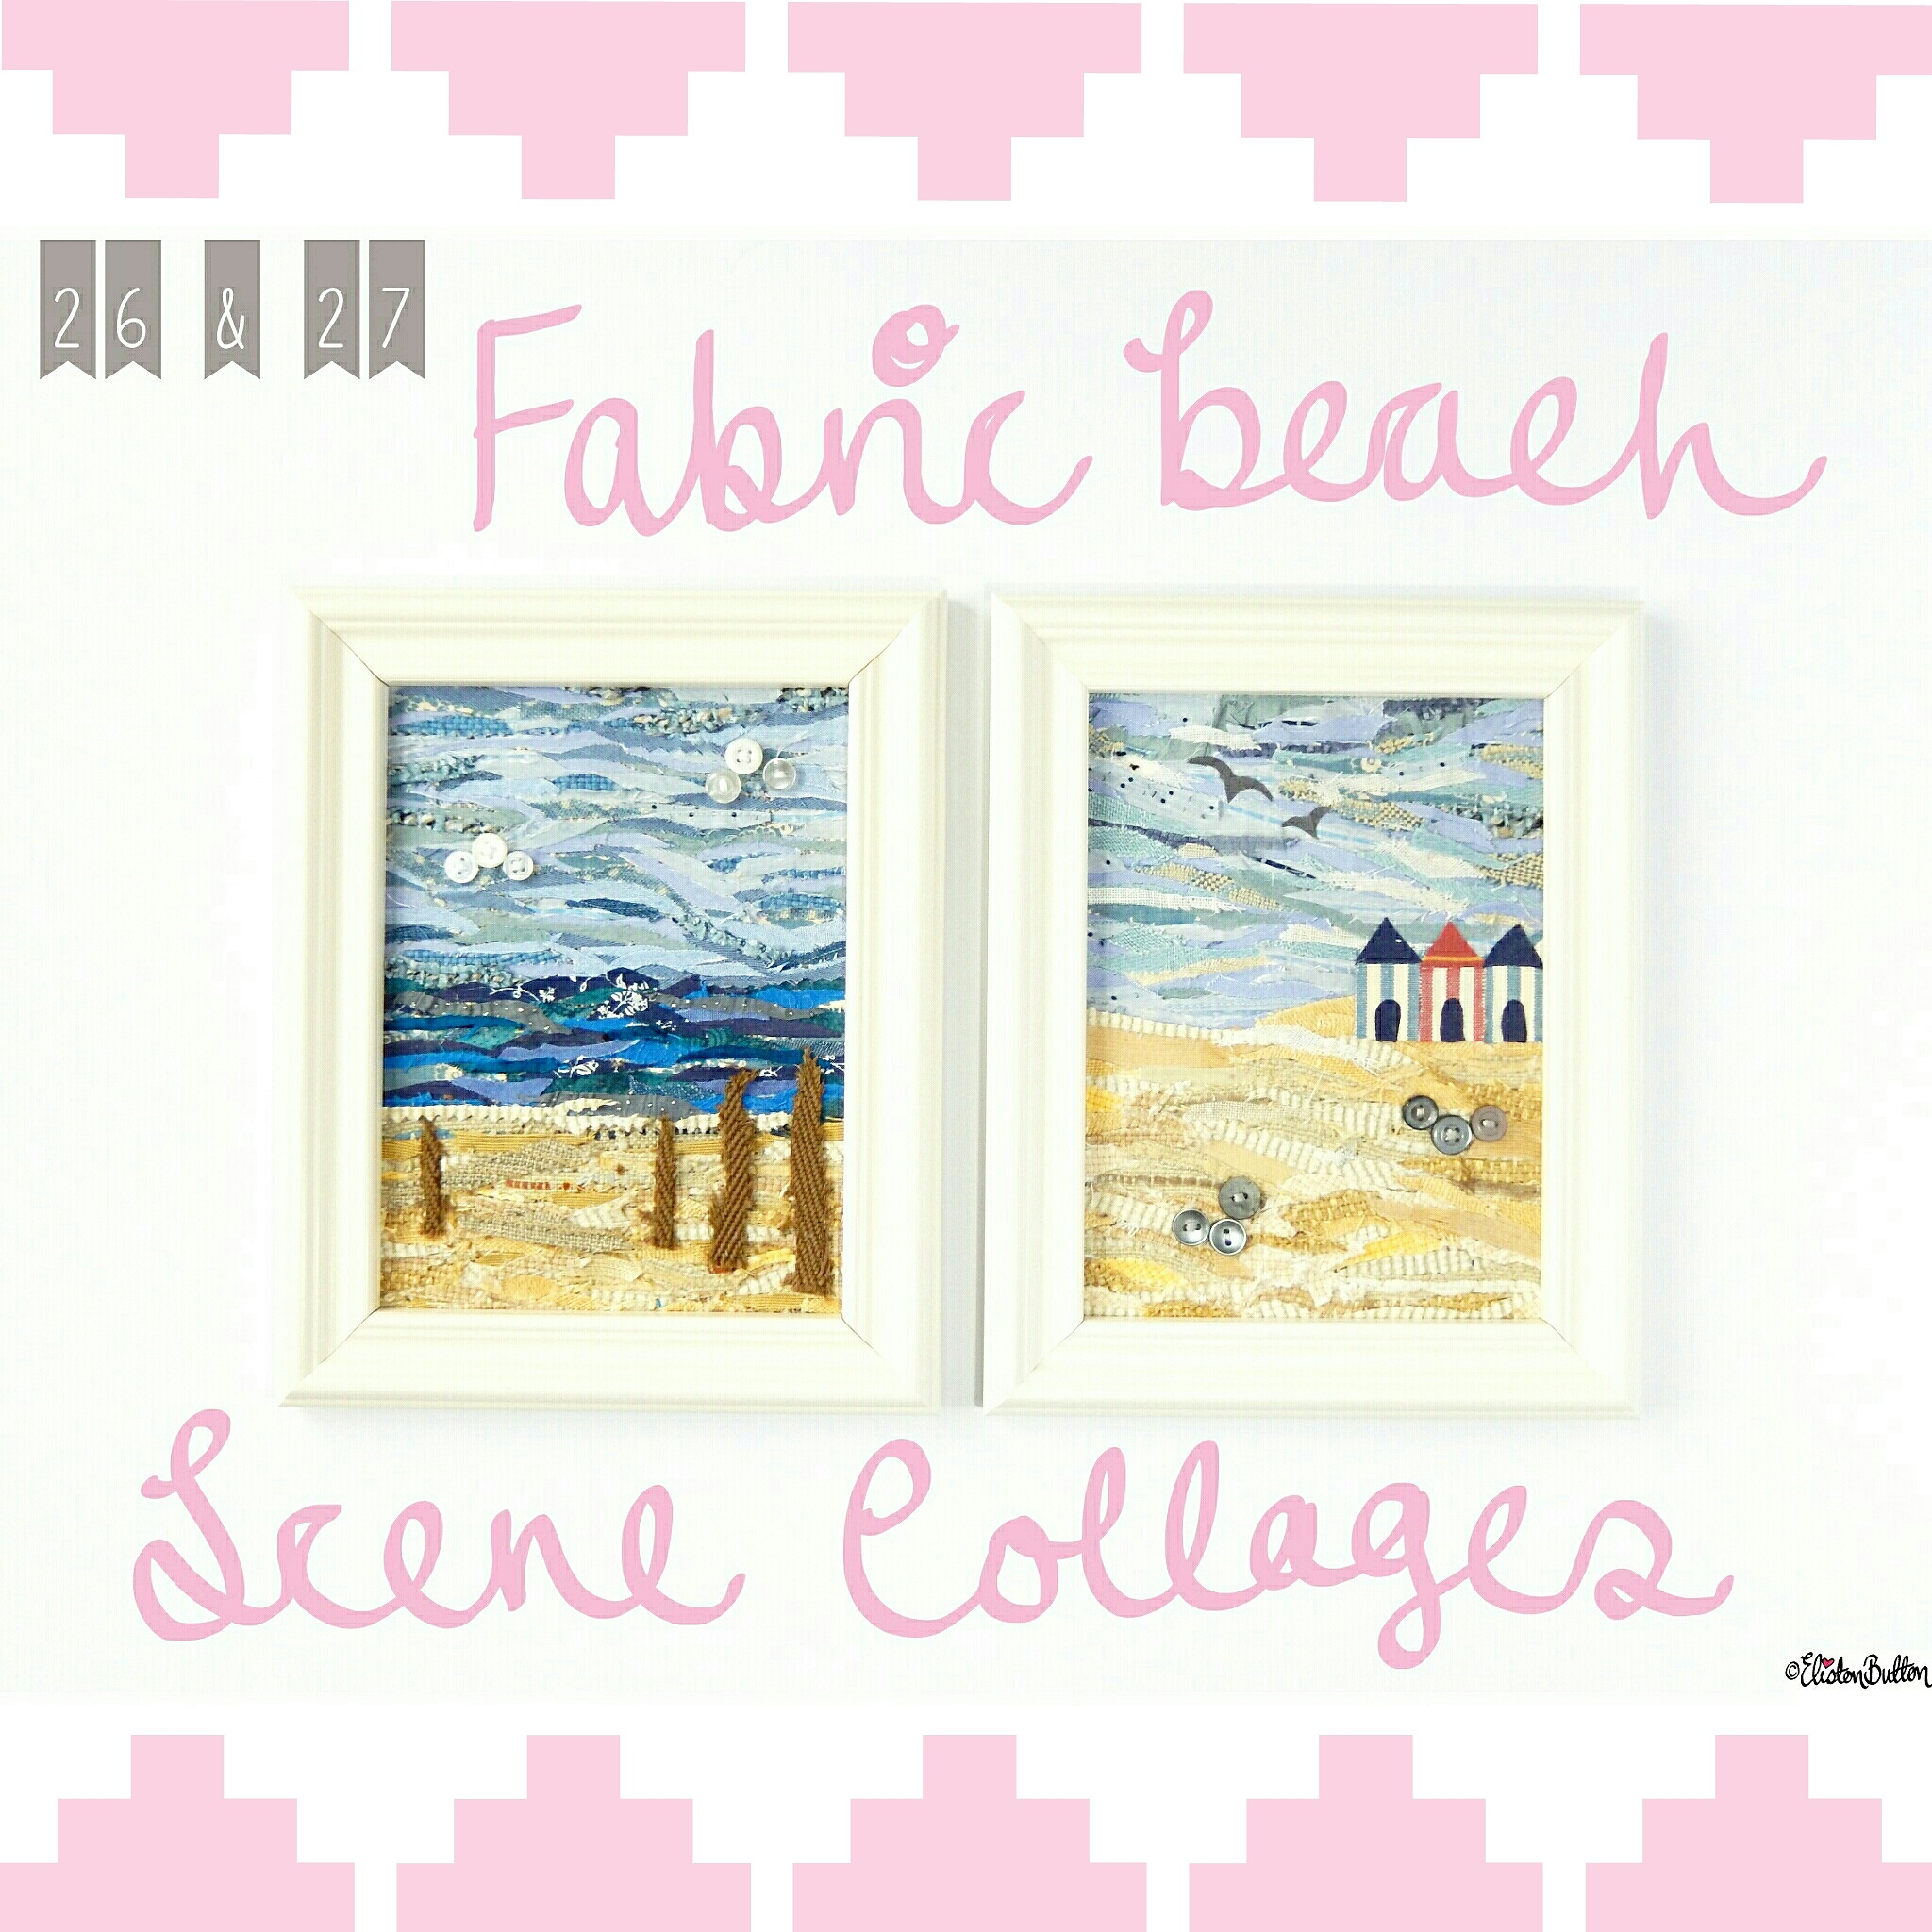 Fabric Beach Scene Collages - Create 28 - I Did It! (a.k.a. My Therapy Session) at www.elistonbutton.com - Eliston Button - That Crafty Kid – Art, Design, Craft & Adventure.